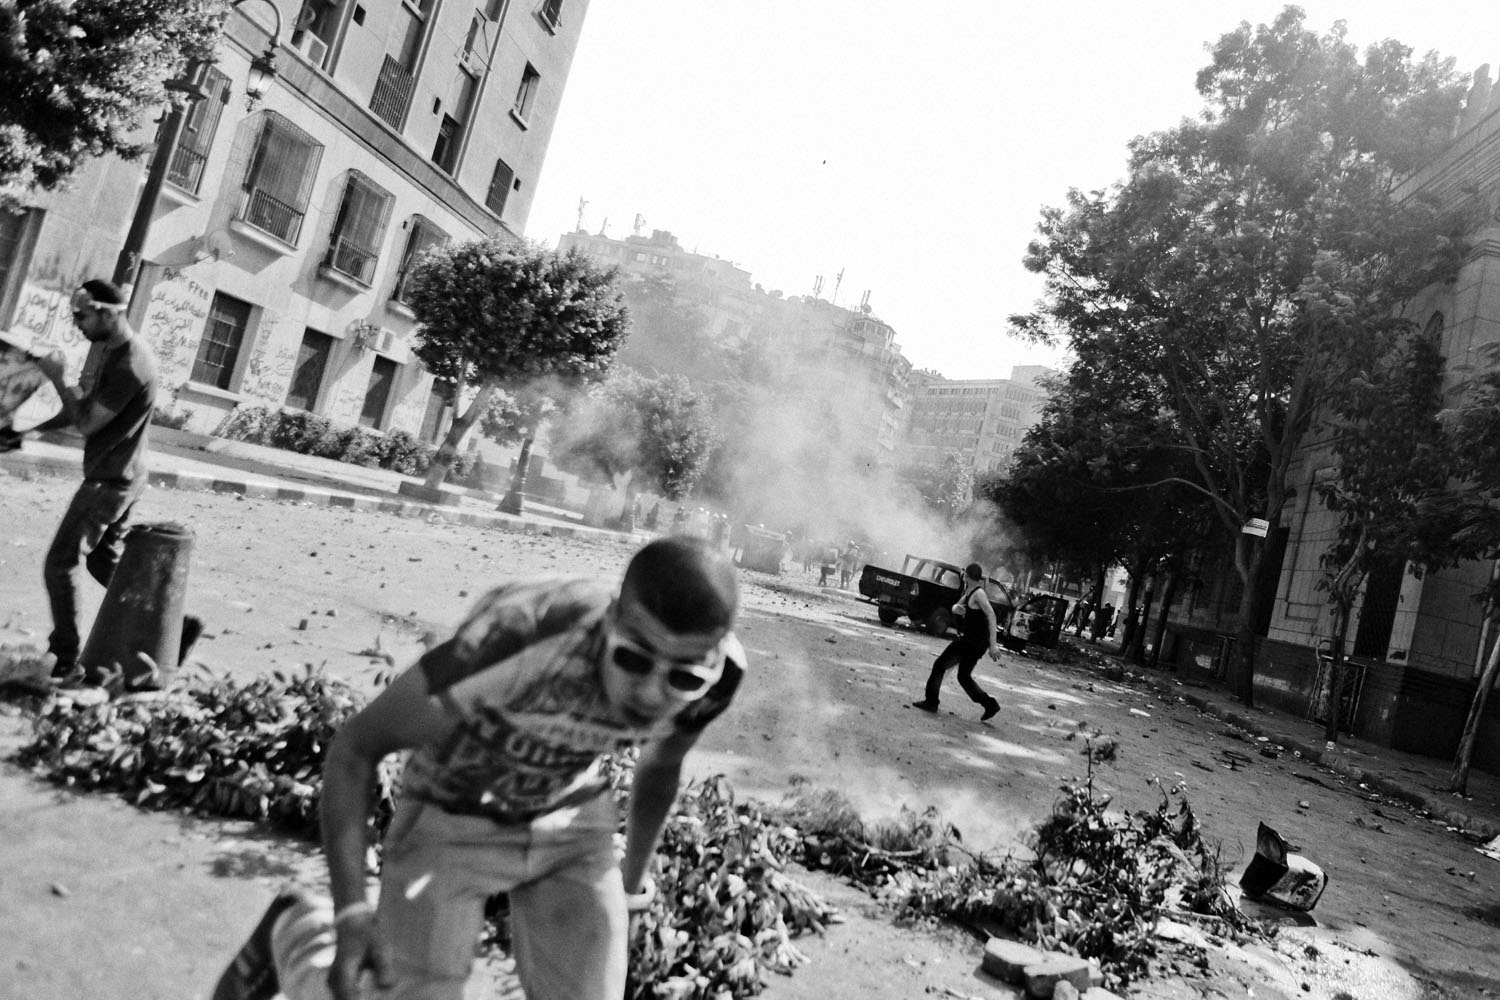 Protestors run during clashes near the U.S. Embassy.